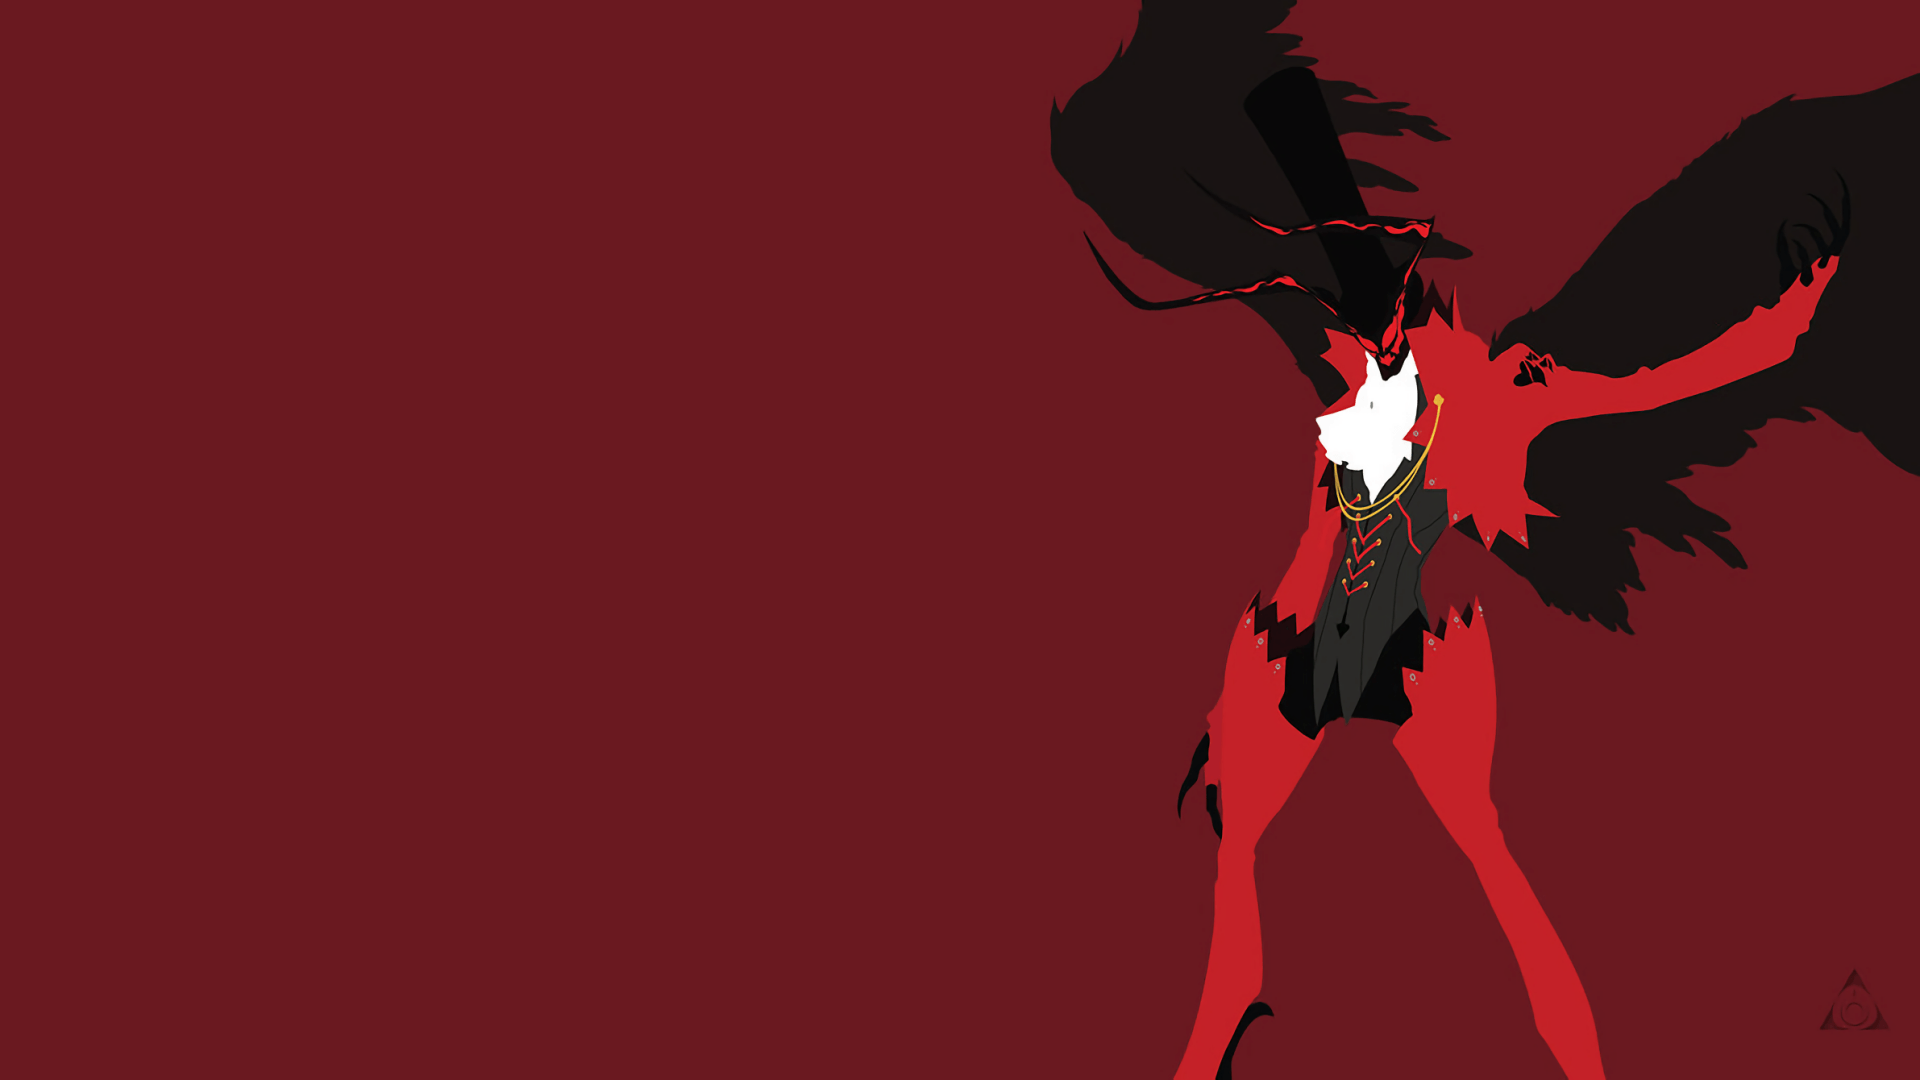 47 Persona 5 HD Wallpapers